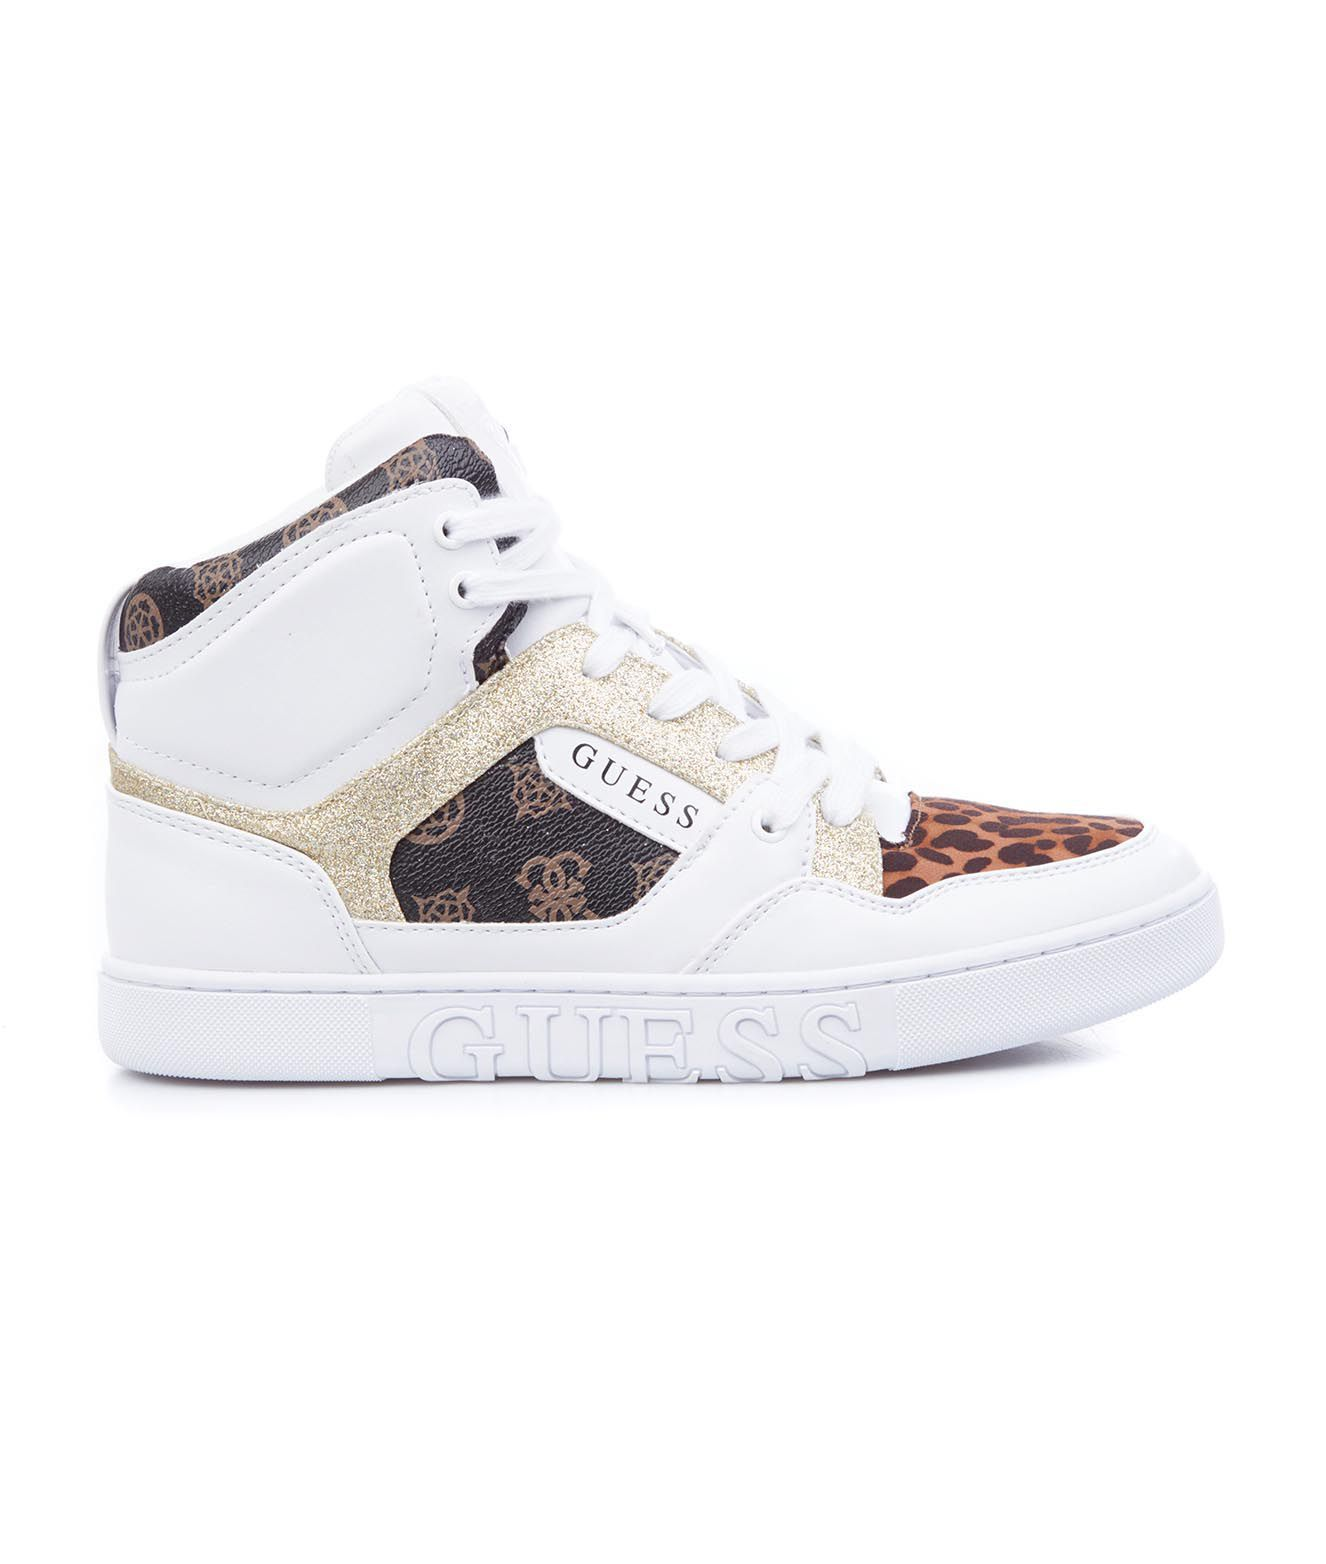 Guess High tops GUESS WOMEN'S FL5JS2FAL12WHIBR WHITE OTHER MATERIALS HI TOP SNEAKERS